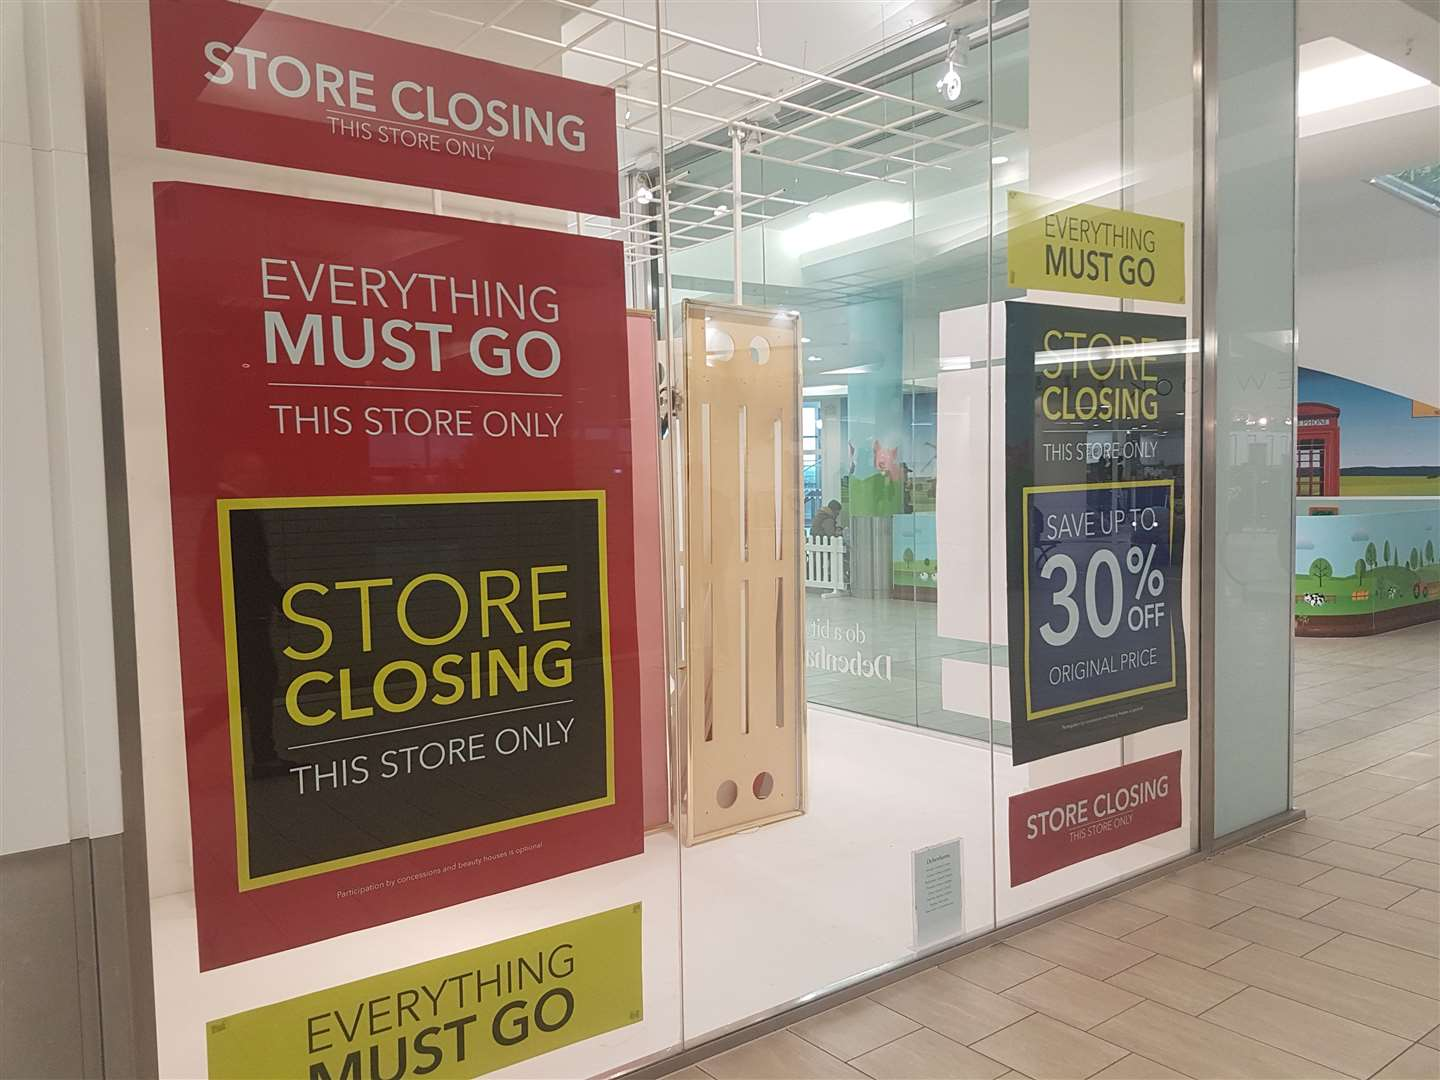 Ashford's Debenhams store has closing down sale decals plastered over its windows (19998586)